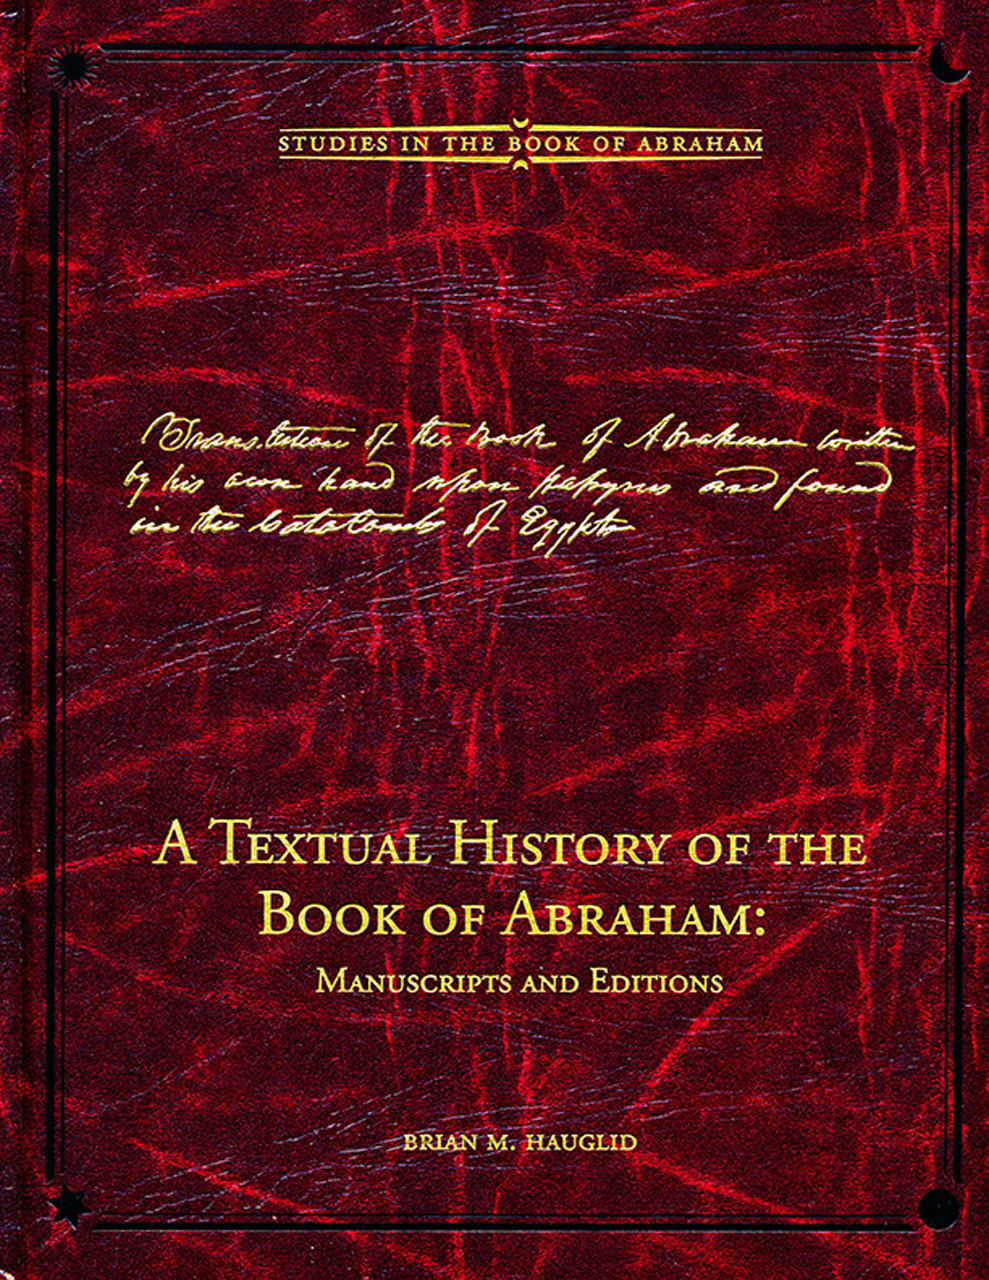 A Textual History of the Book of Abraham: Manuscripts and Editions